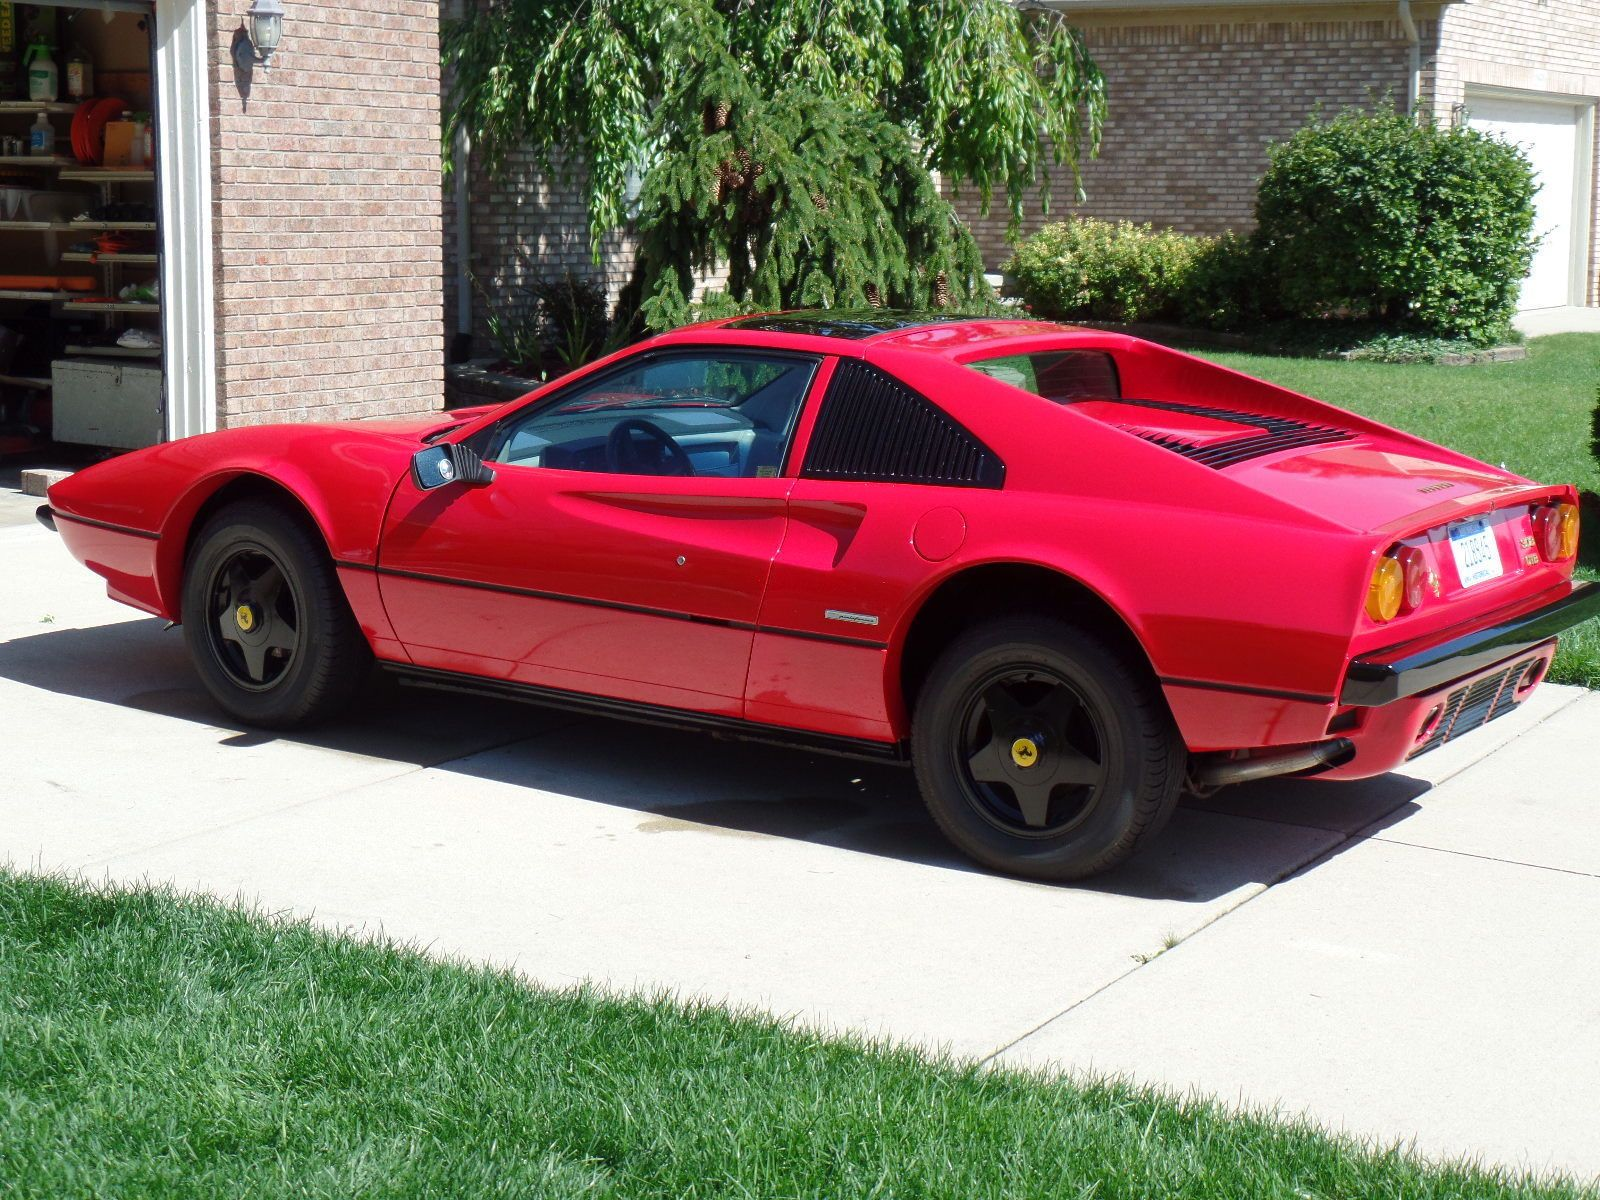 head turner 1985 Ferrari 308 GT Coupe Replica | Replica cars for ...